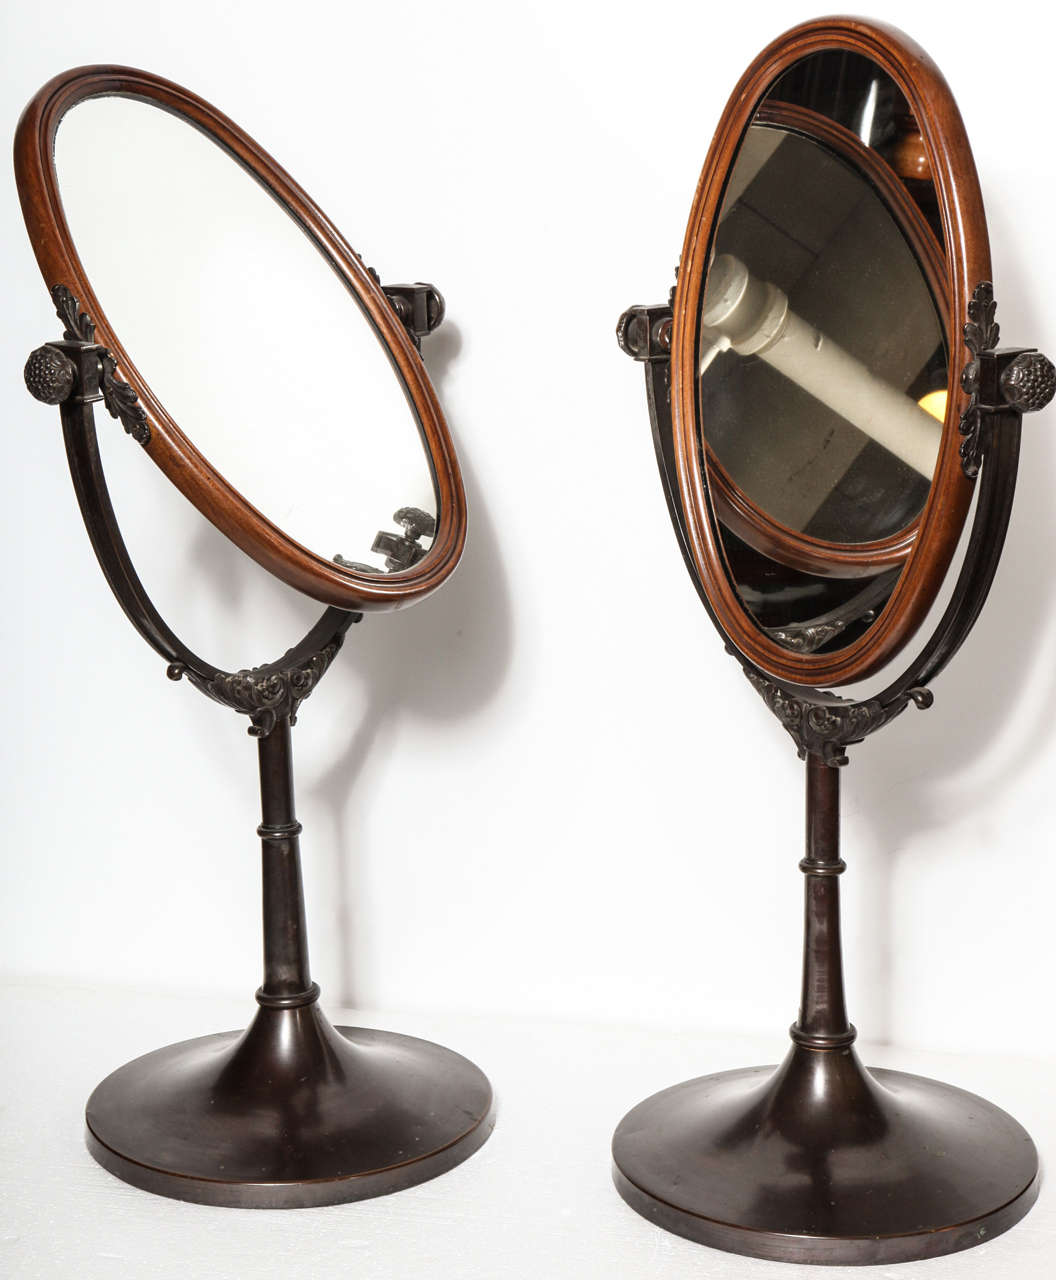 English, Bronze and Wood Miniature Cheval Mirrors